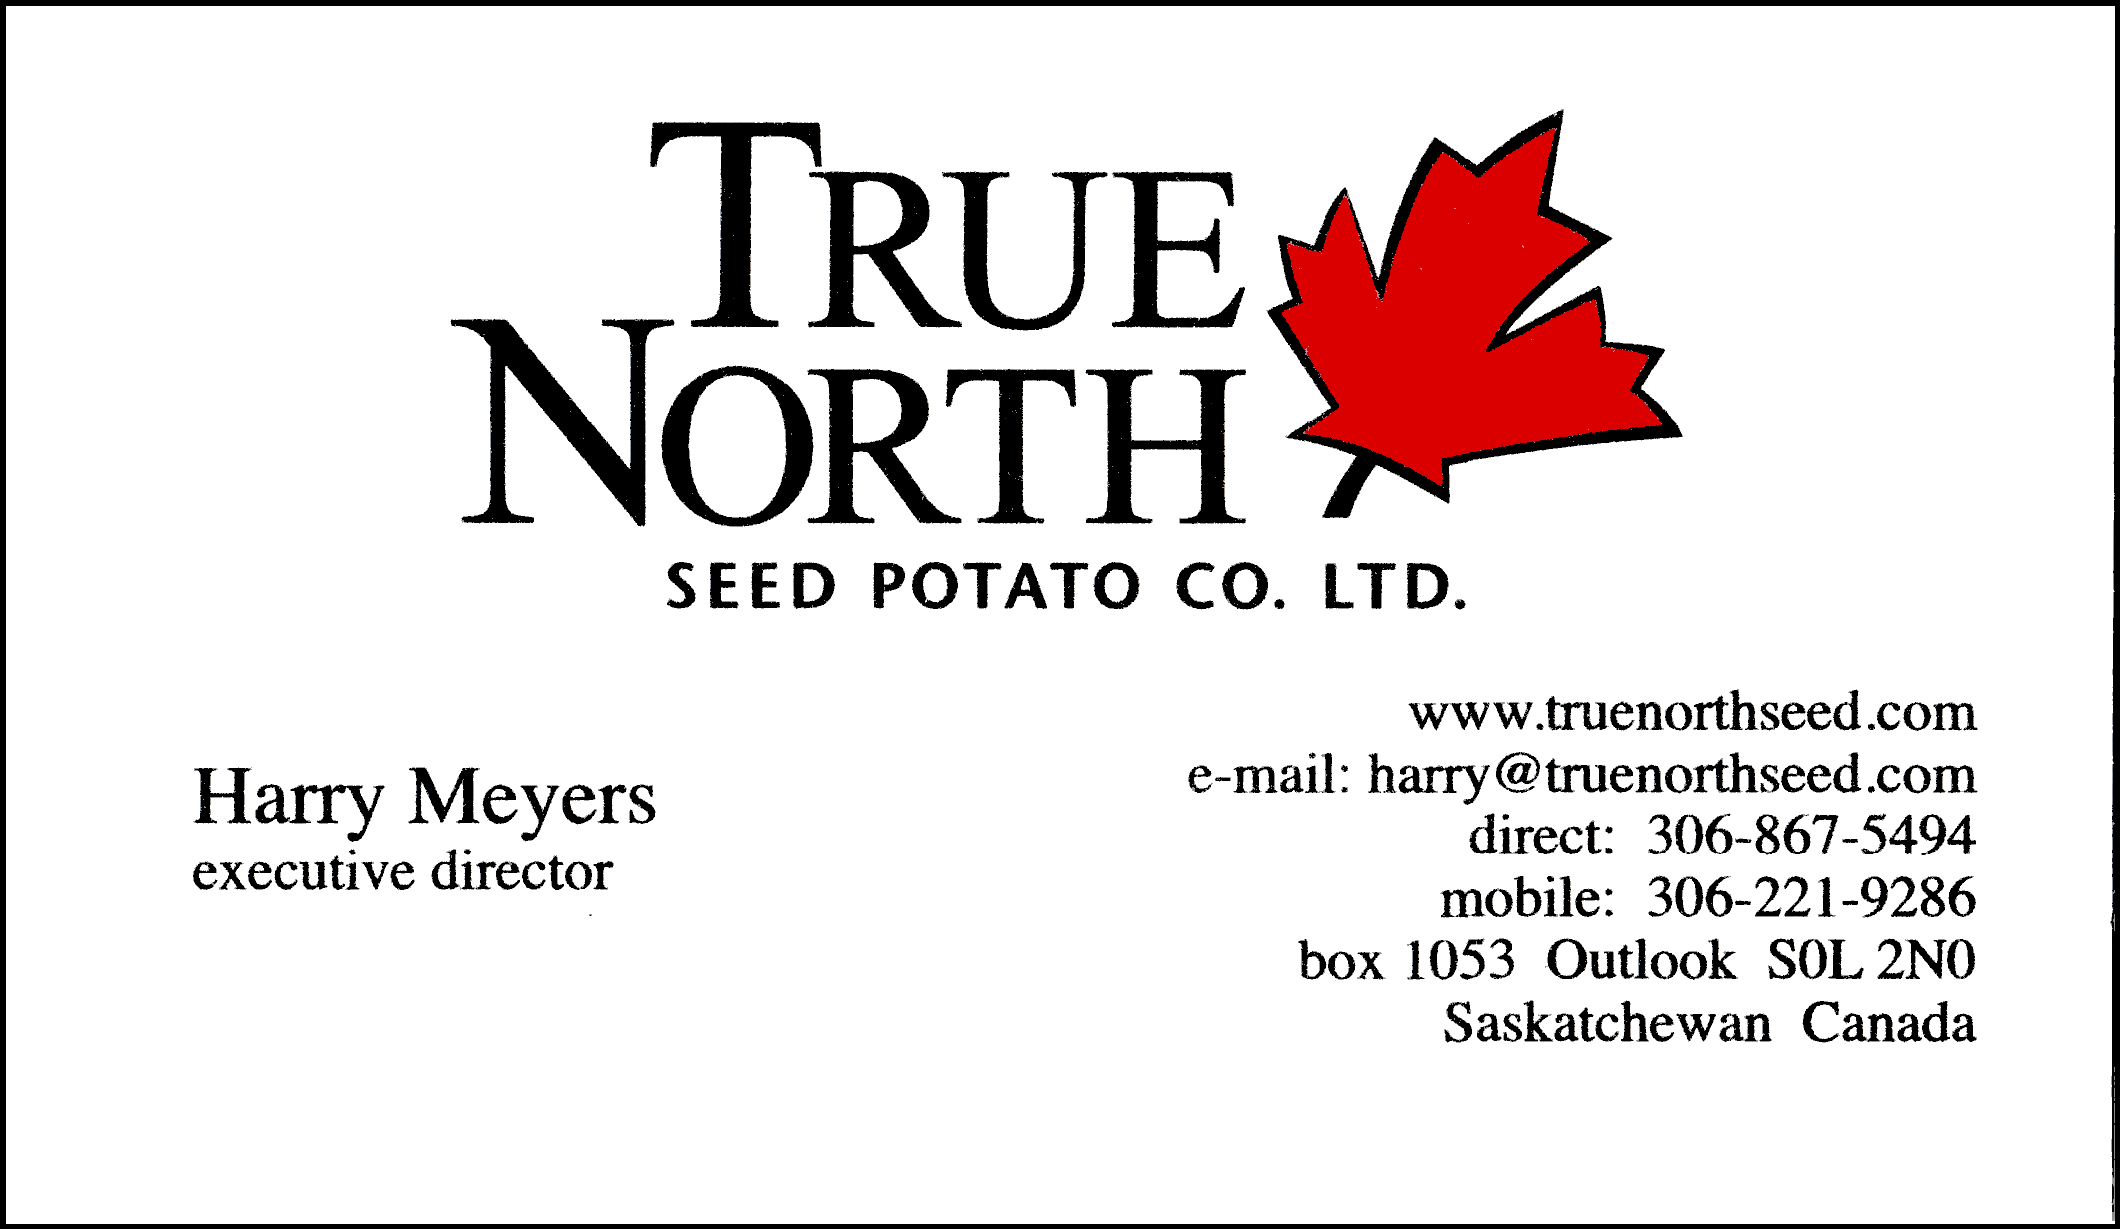 True North Seed Potato Co Ltd.